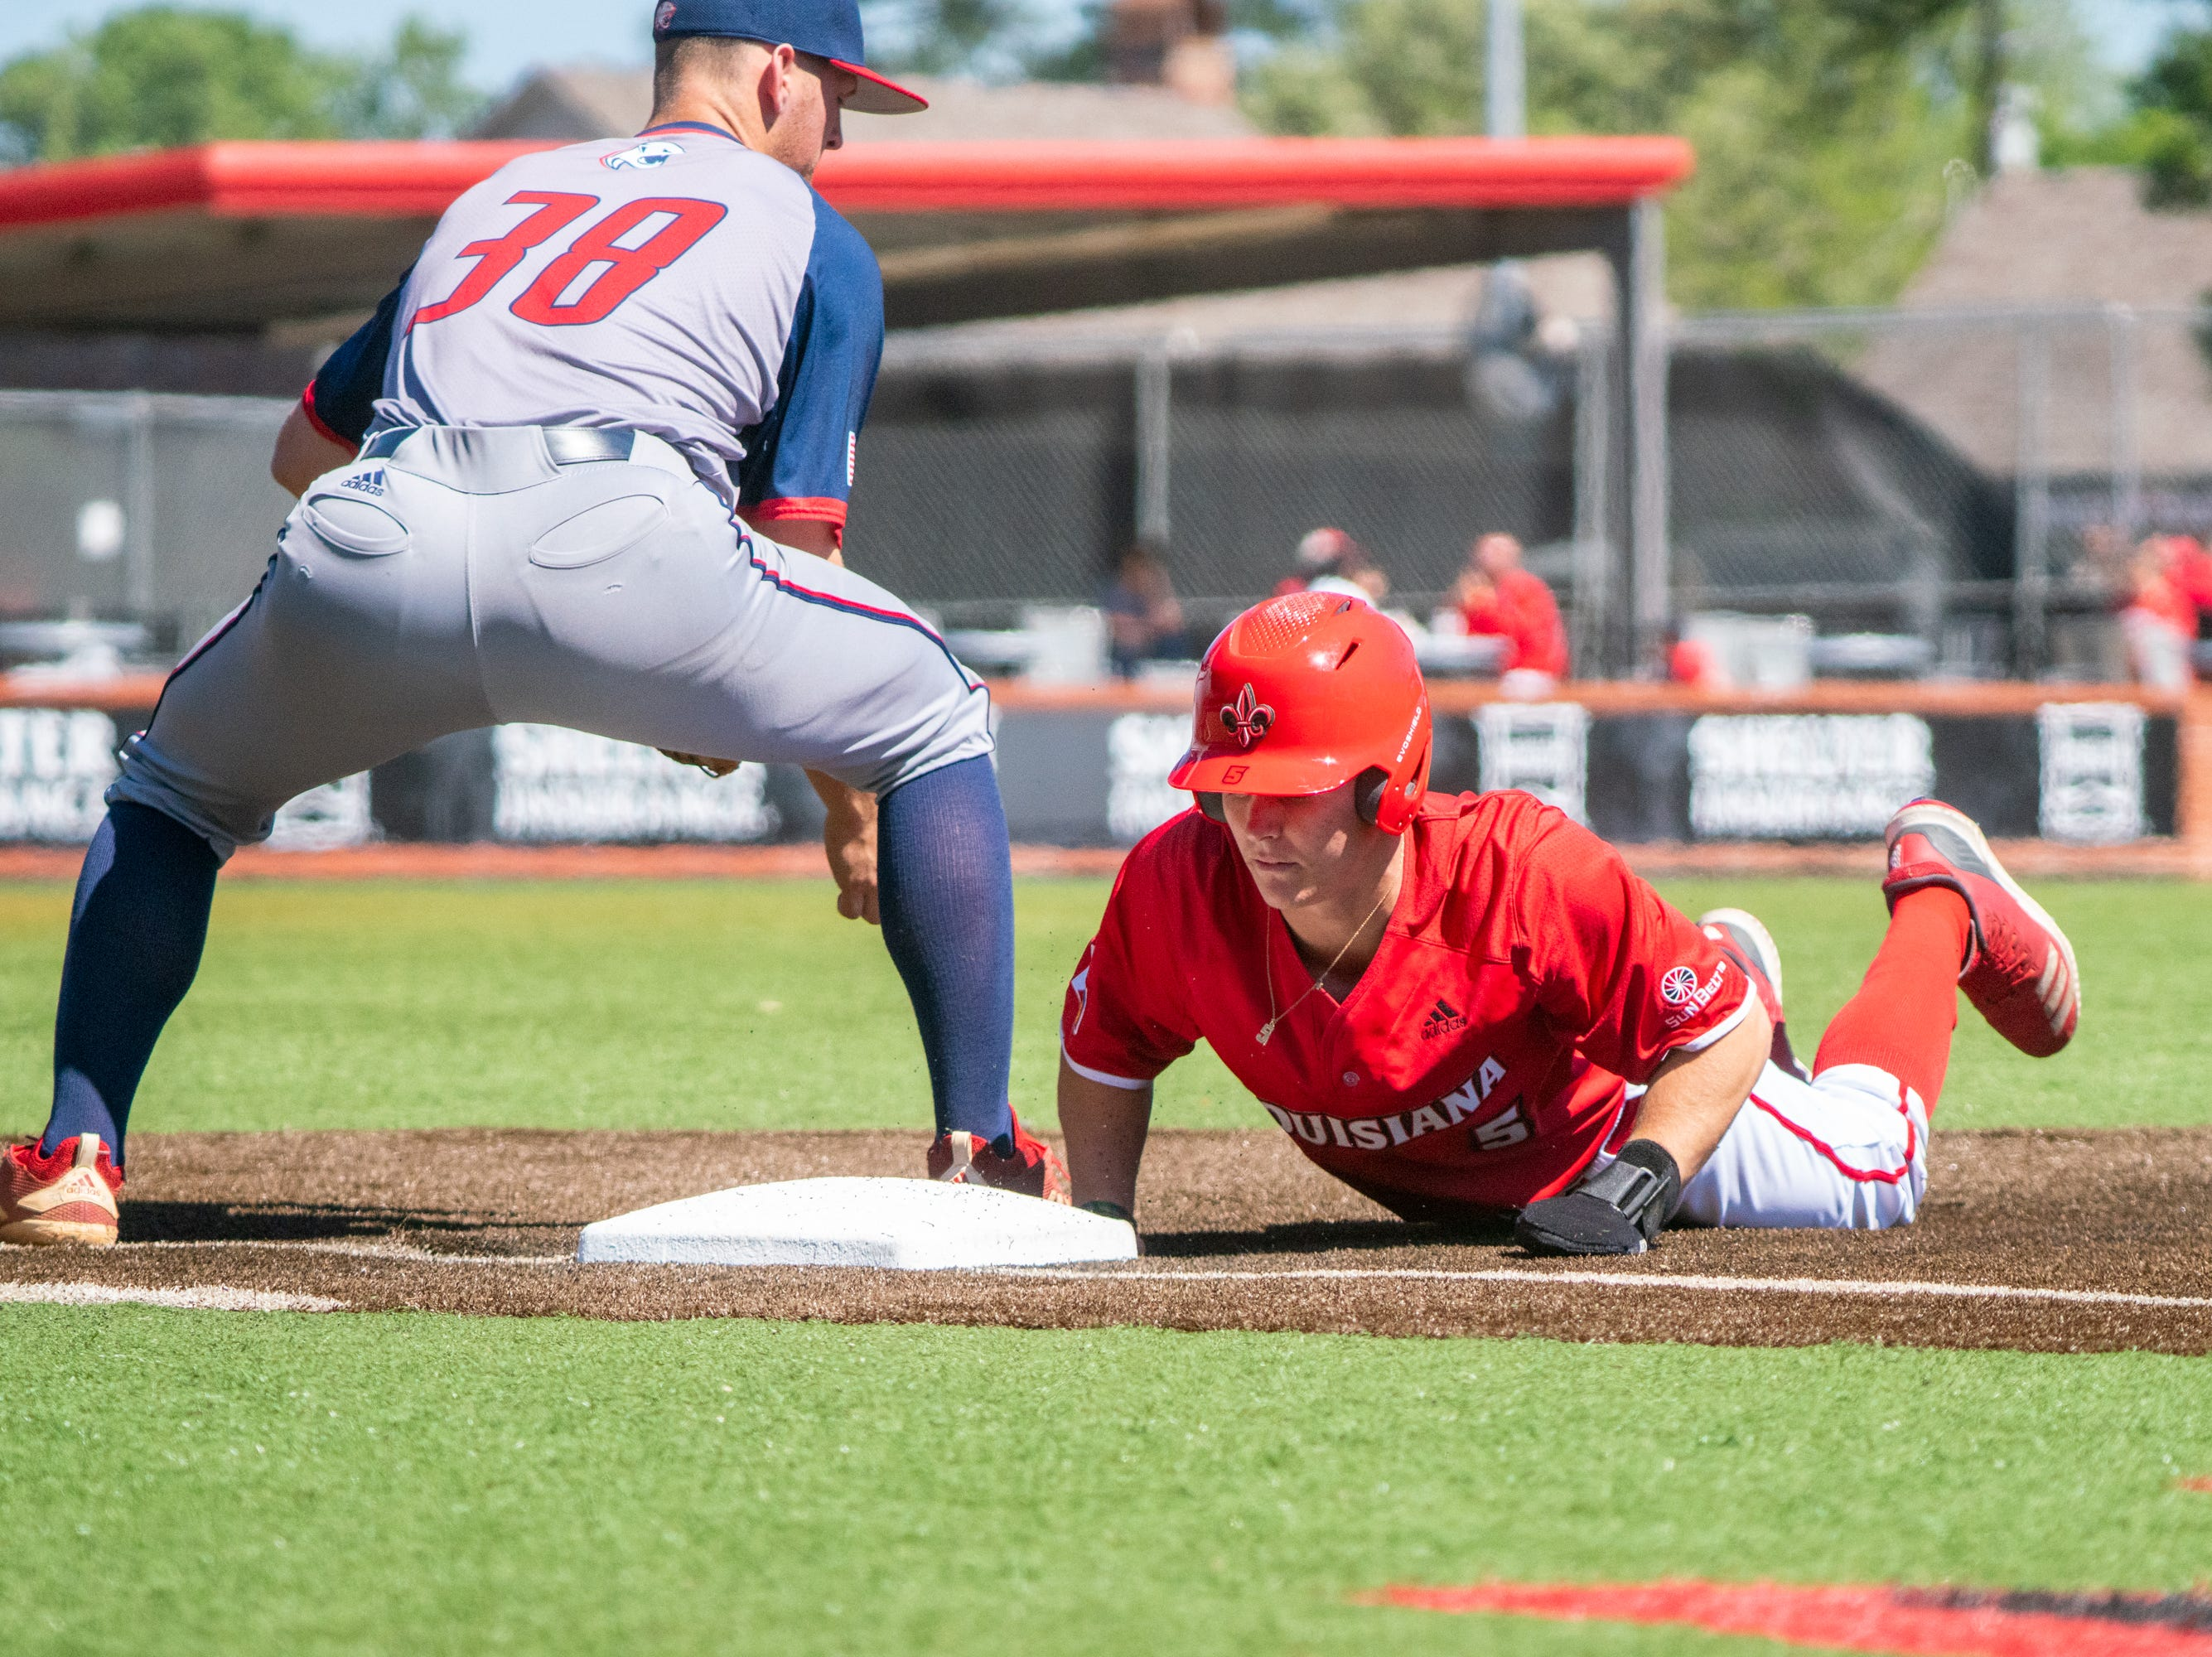 """UL's Hayden Cantrelle dives back onto first base to get safe as the Ragin' Cajuns take on the South Alabama Jaguars at M.L. """"Tigue"""" Moore Field on Sunday, April 14, 2019."""